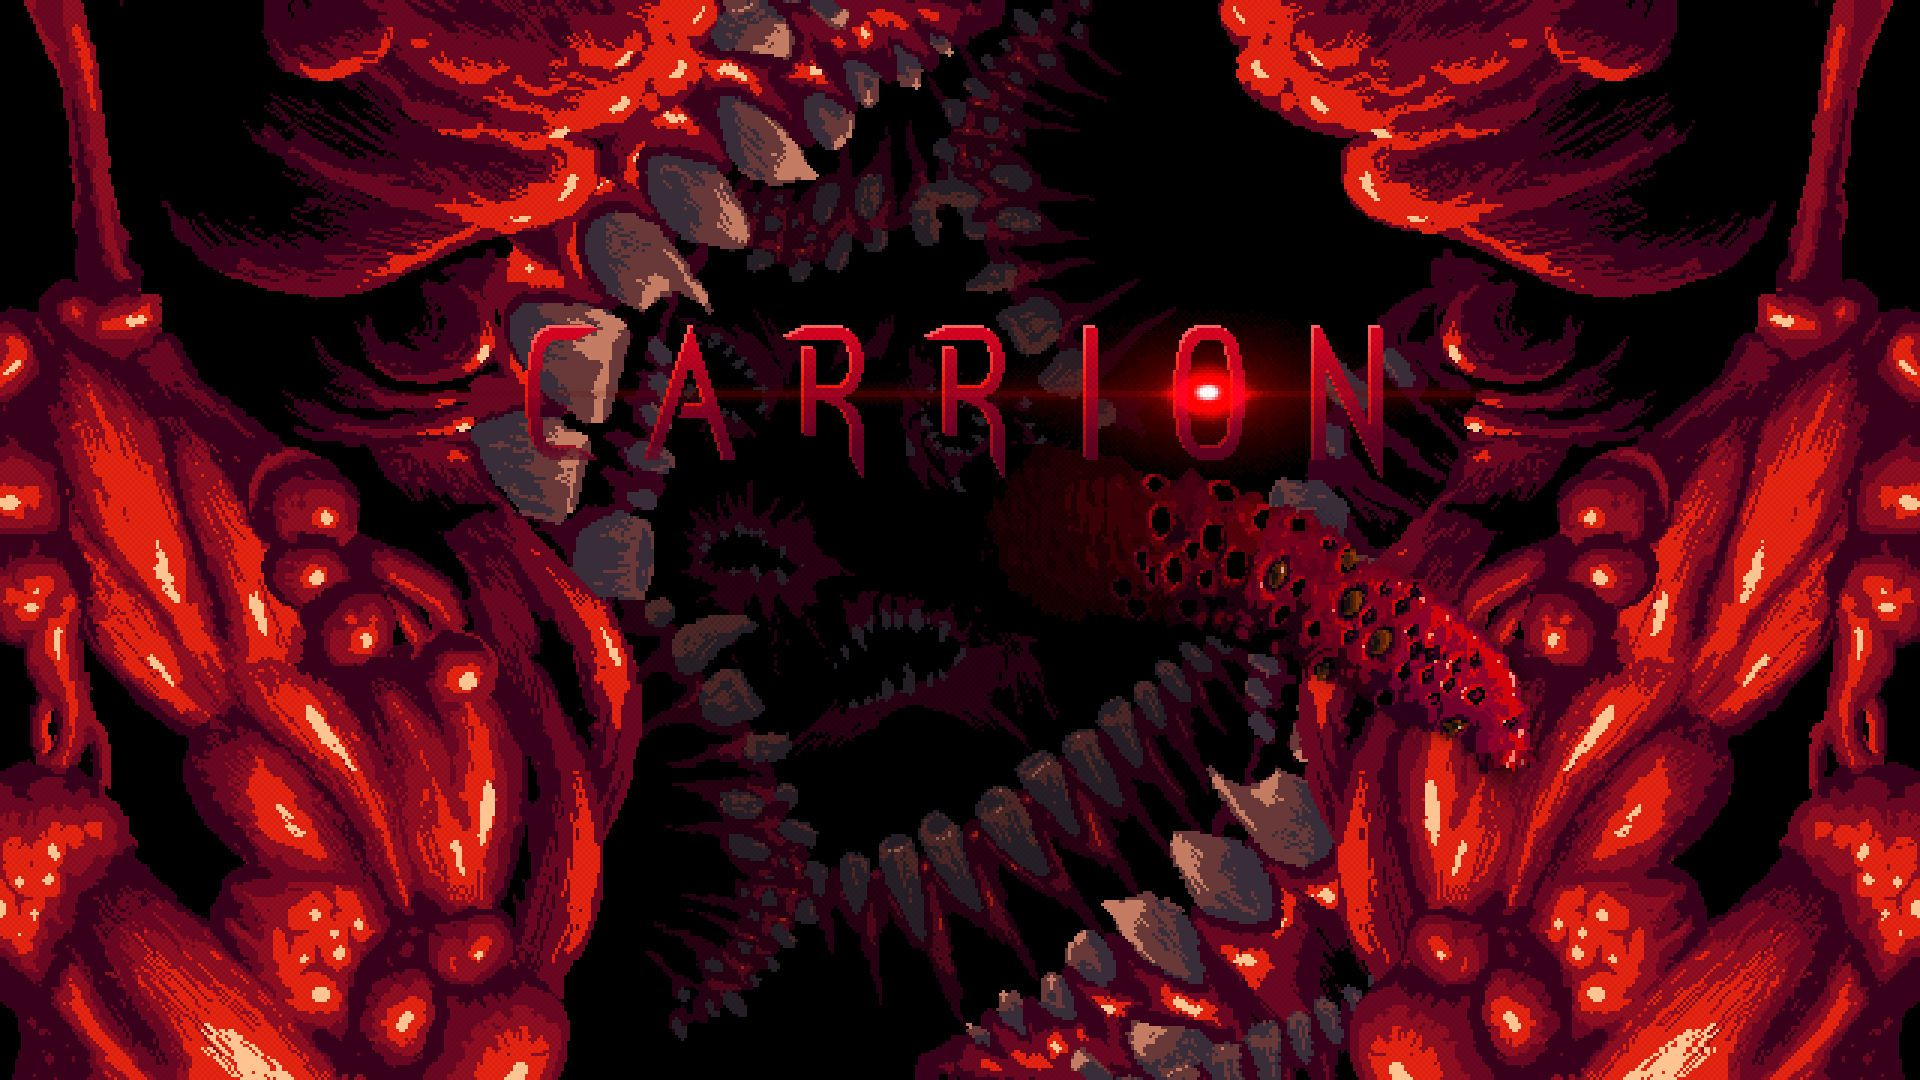 Carrion The Developers Change The Icon On Switch To Make It Less Disturbing Let S Talk About Video Games